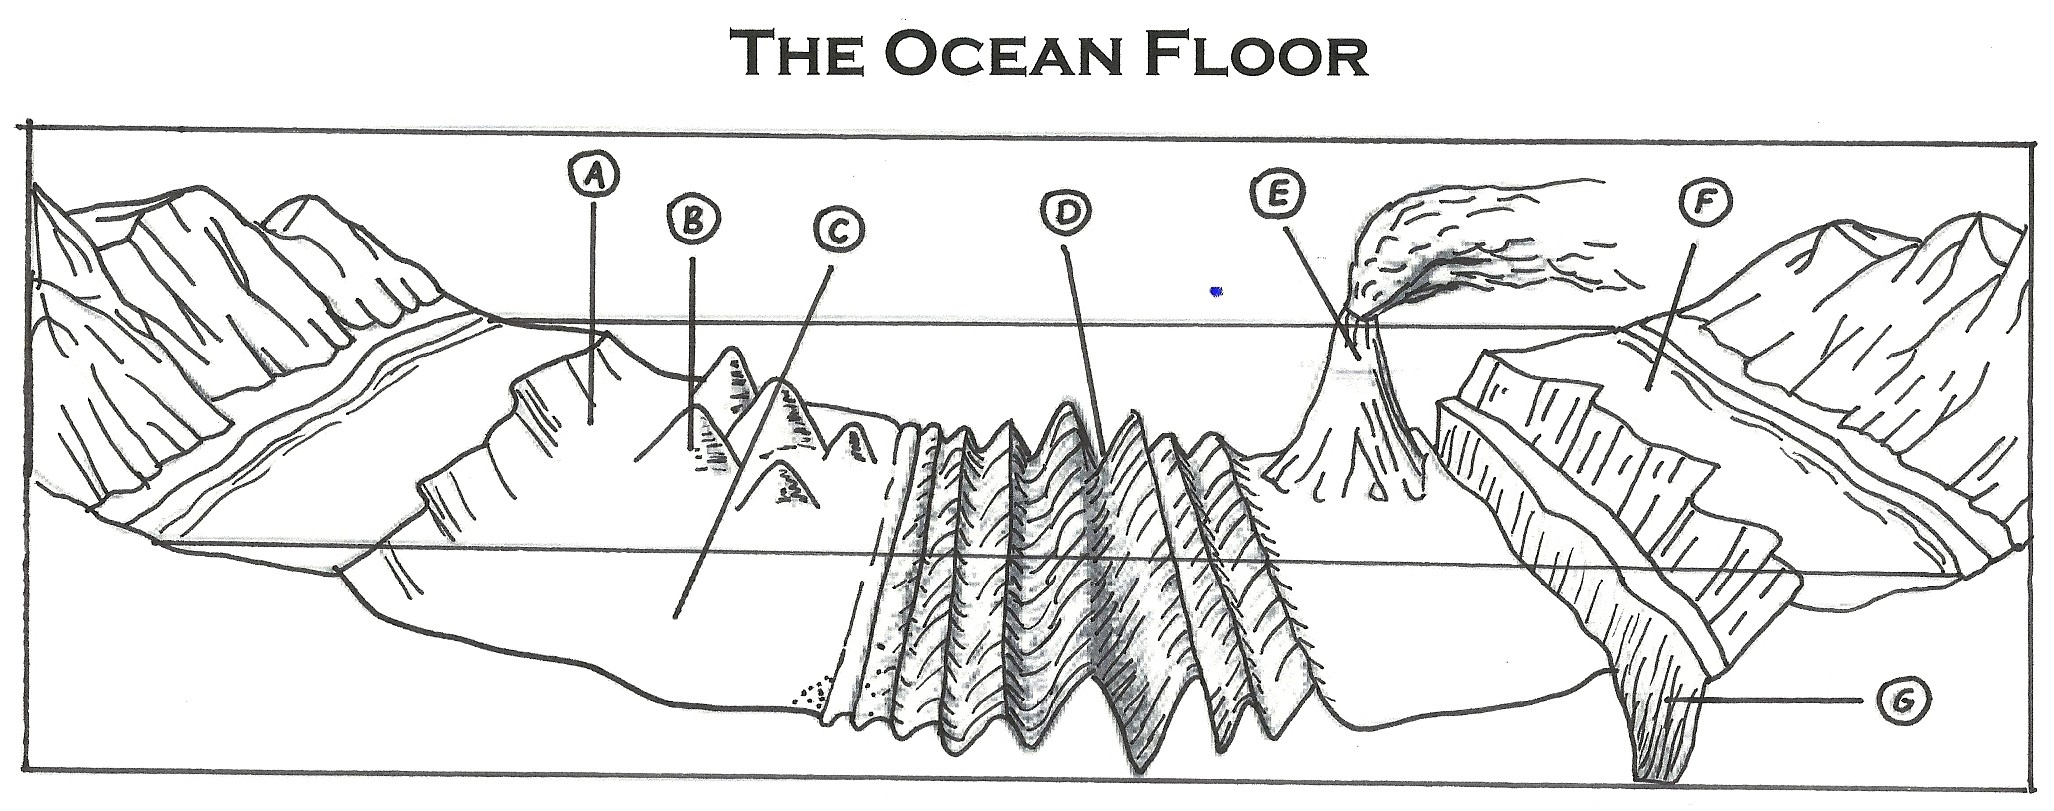 Worksheets Features Of The Ocean Floor Worksheet the ocean floor thinglink